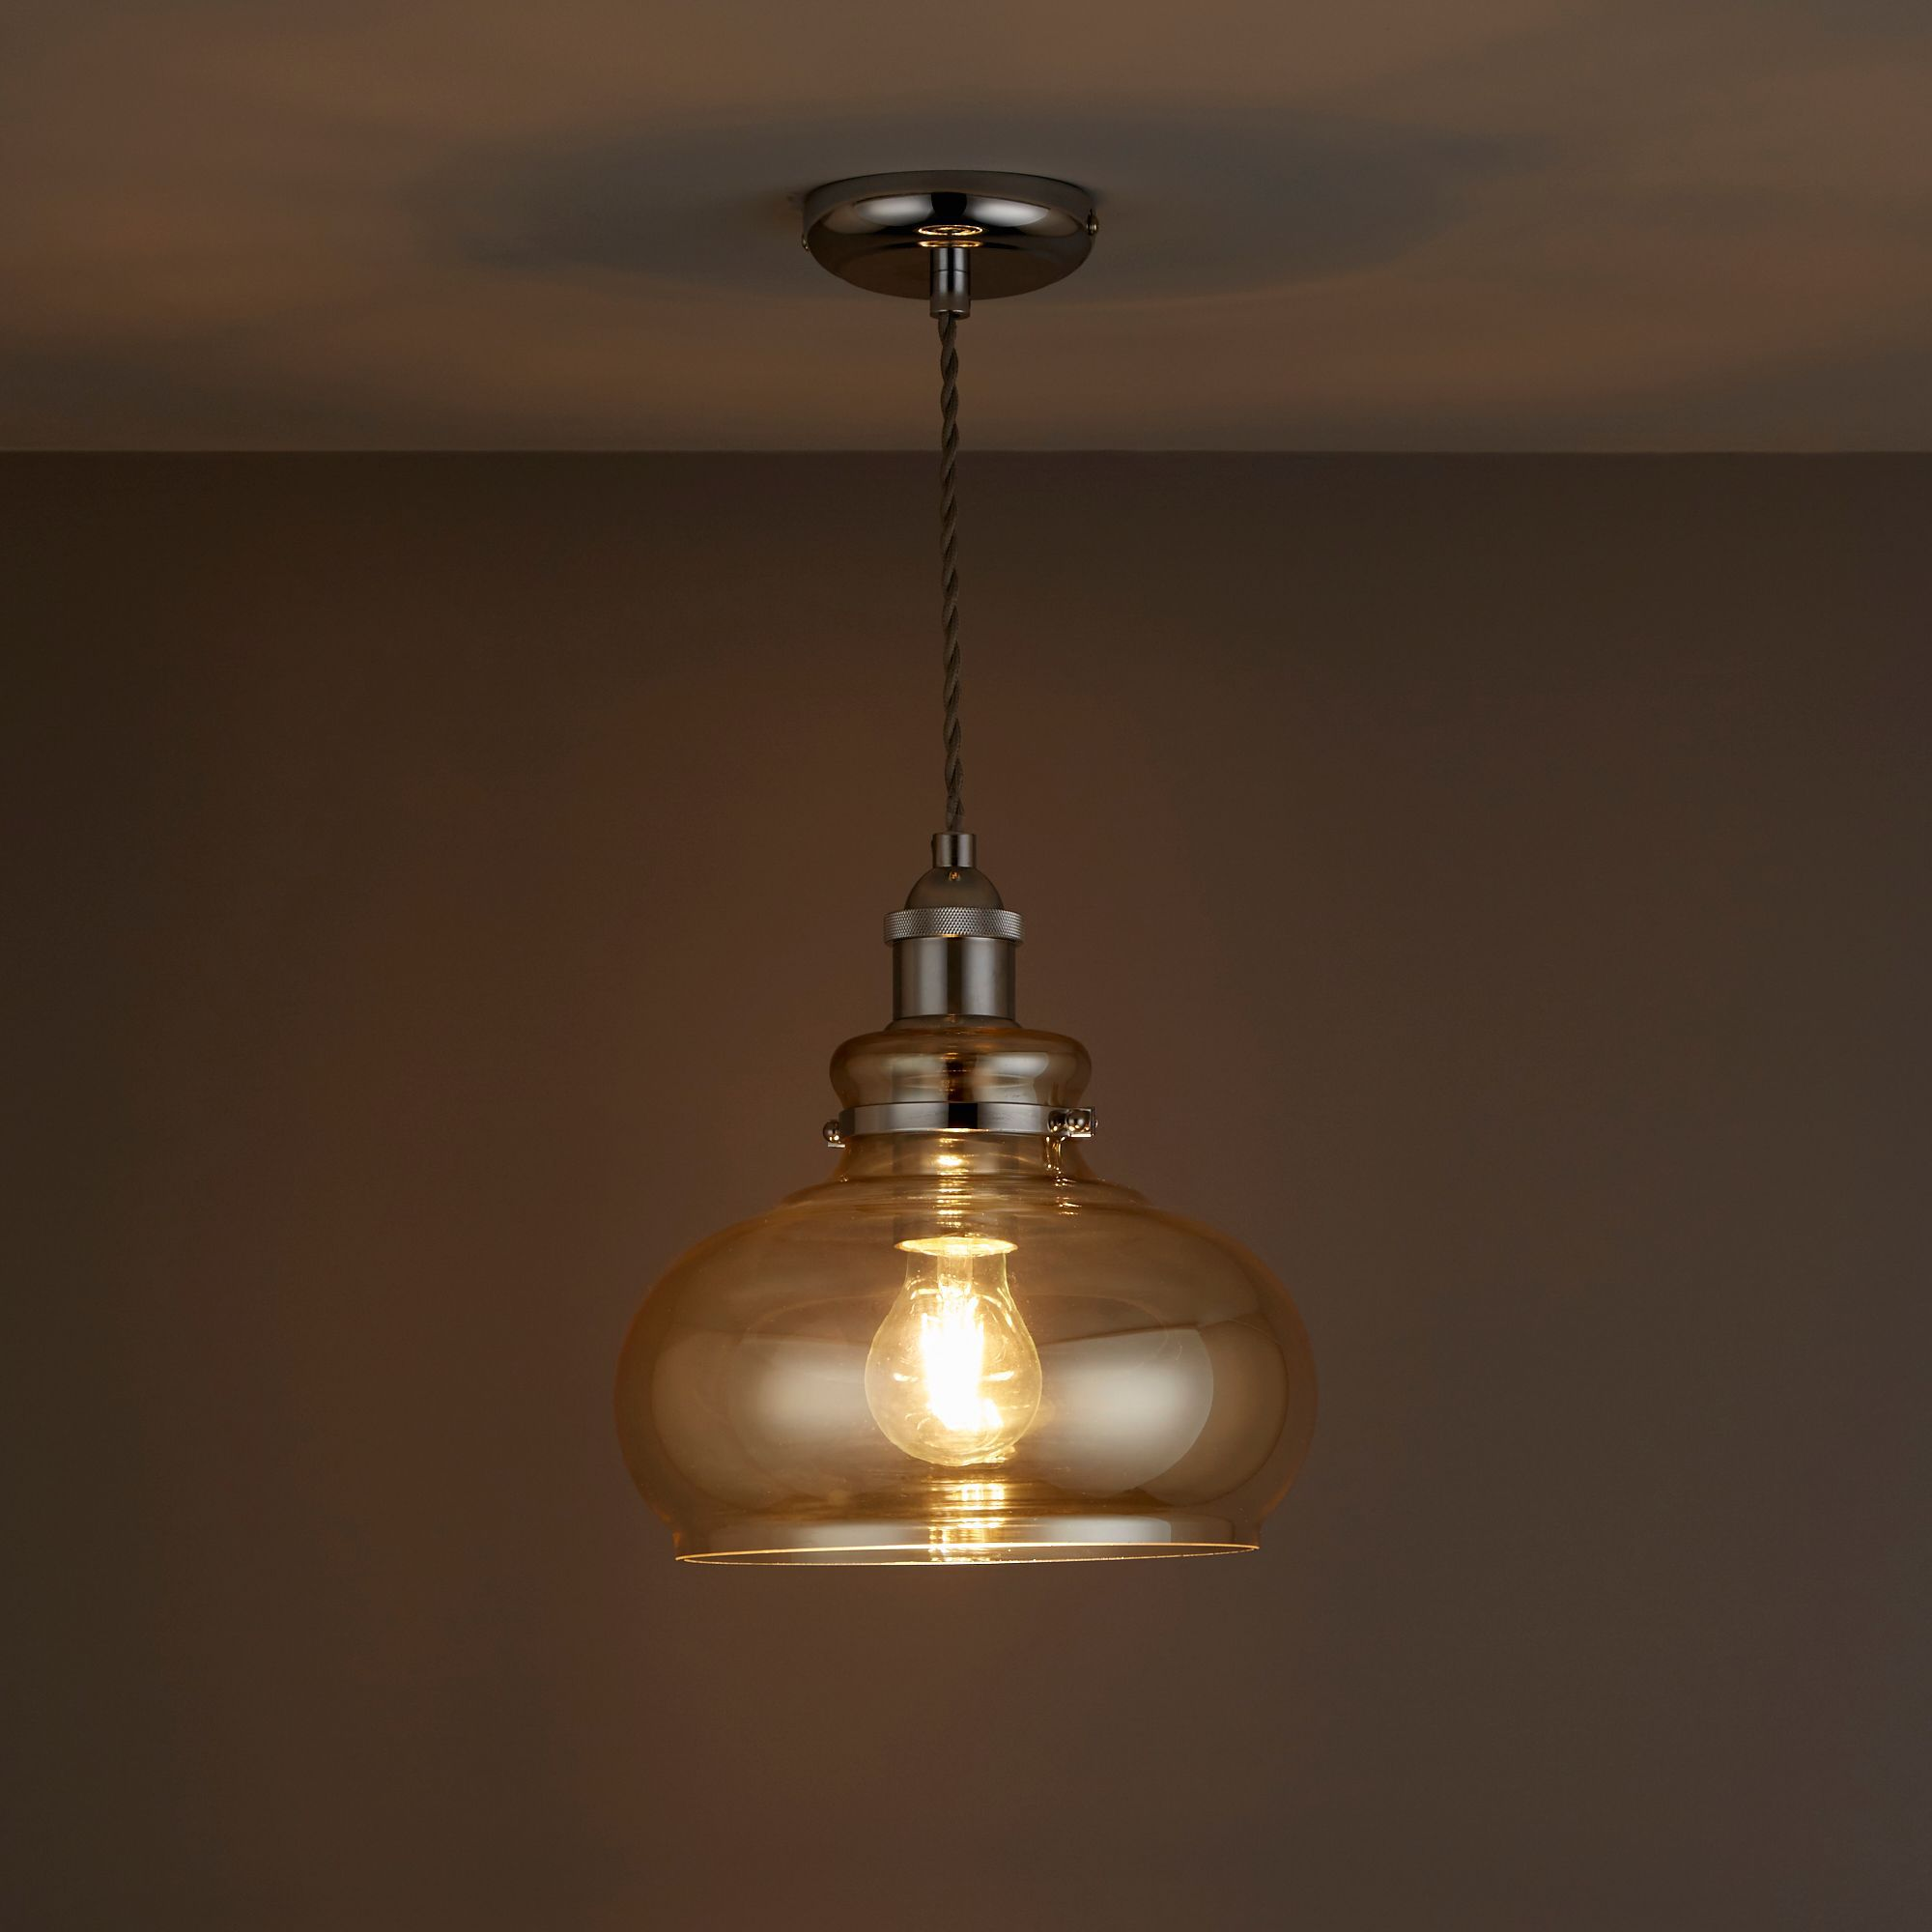 pendant mini gr shop louis poulsen canada light huesofblue lamp ph